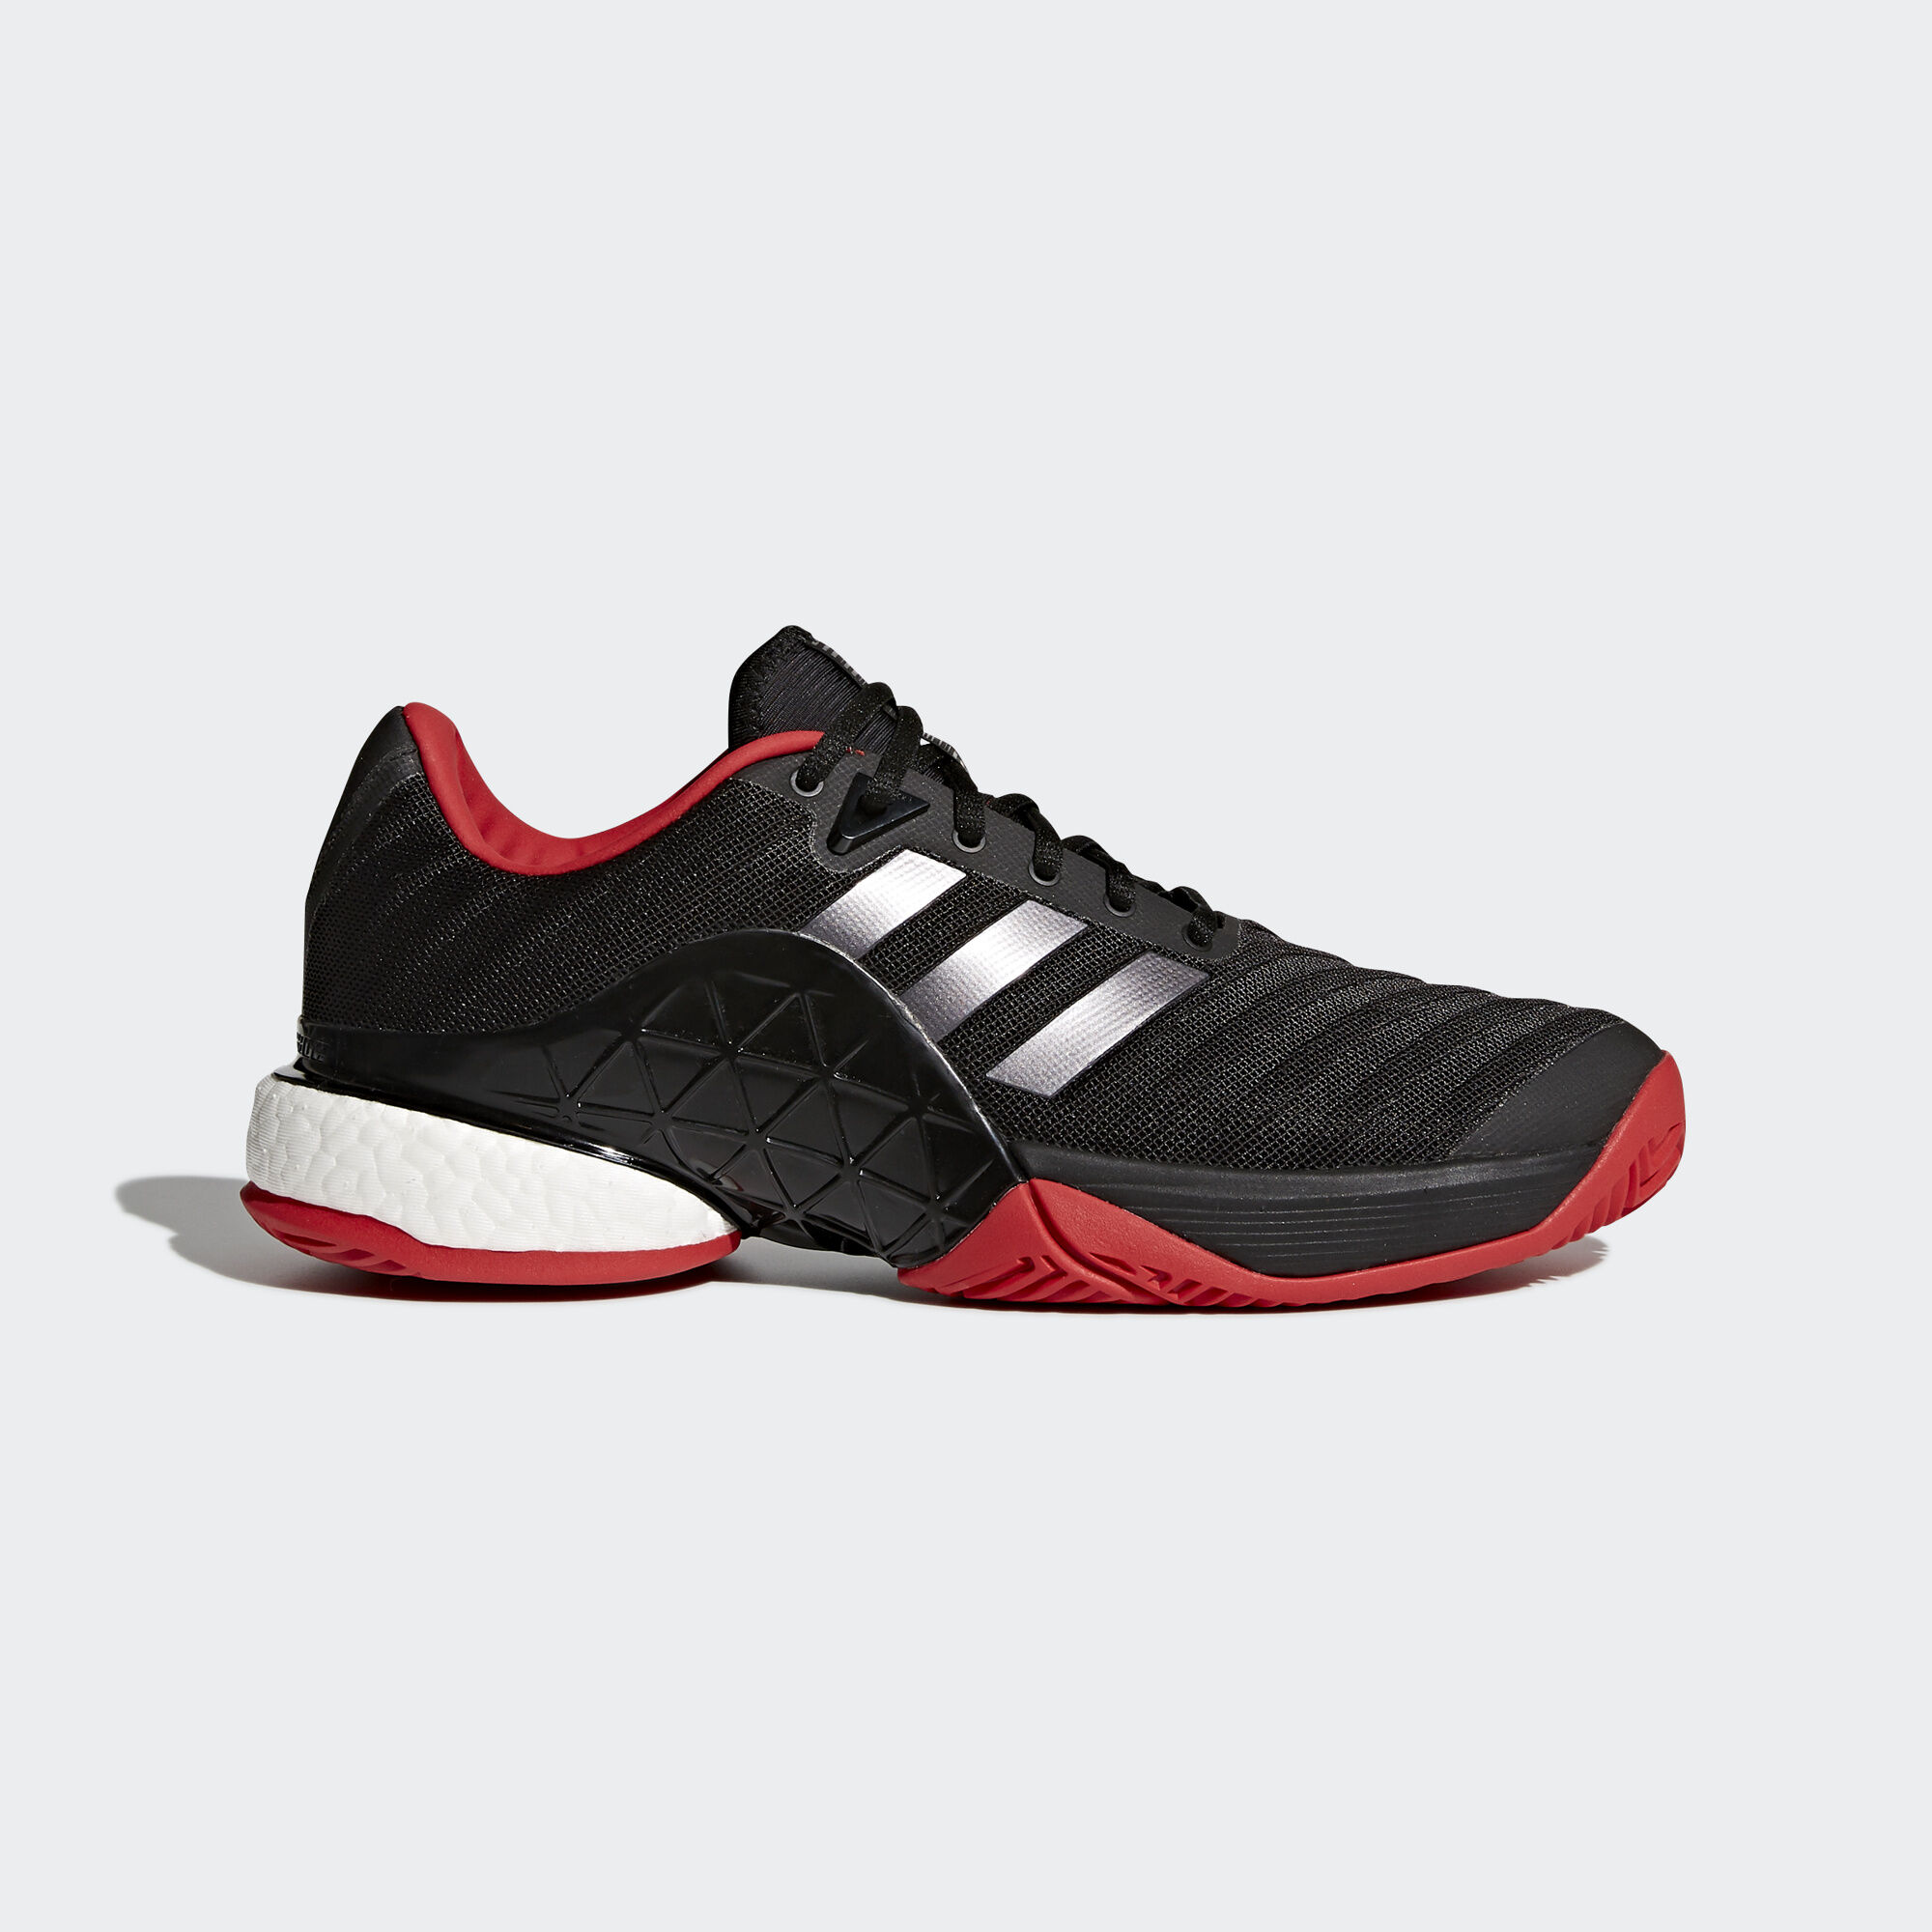 First Adidas Tennis Shoe